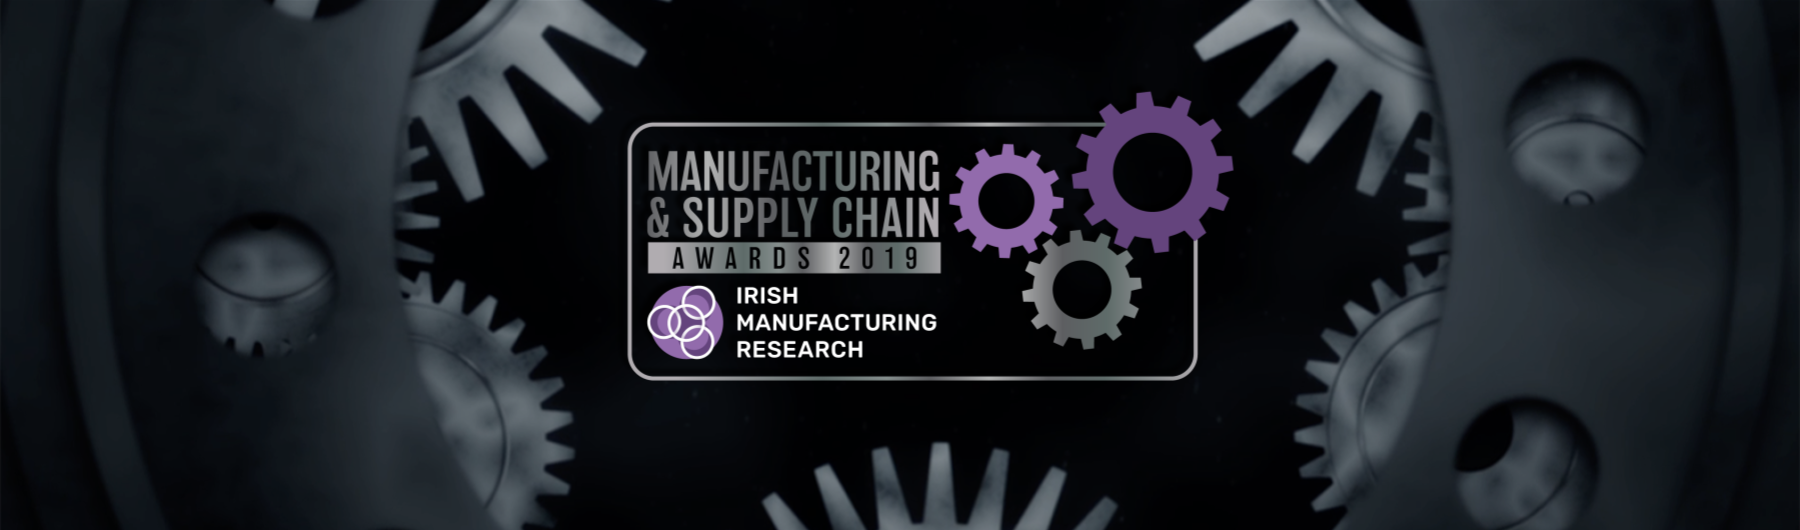 IMR Manufacturing & Supply Chain Awards 2019